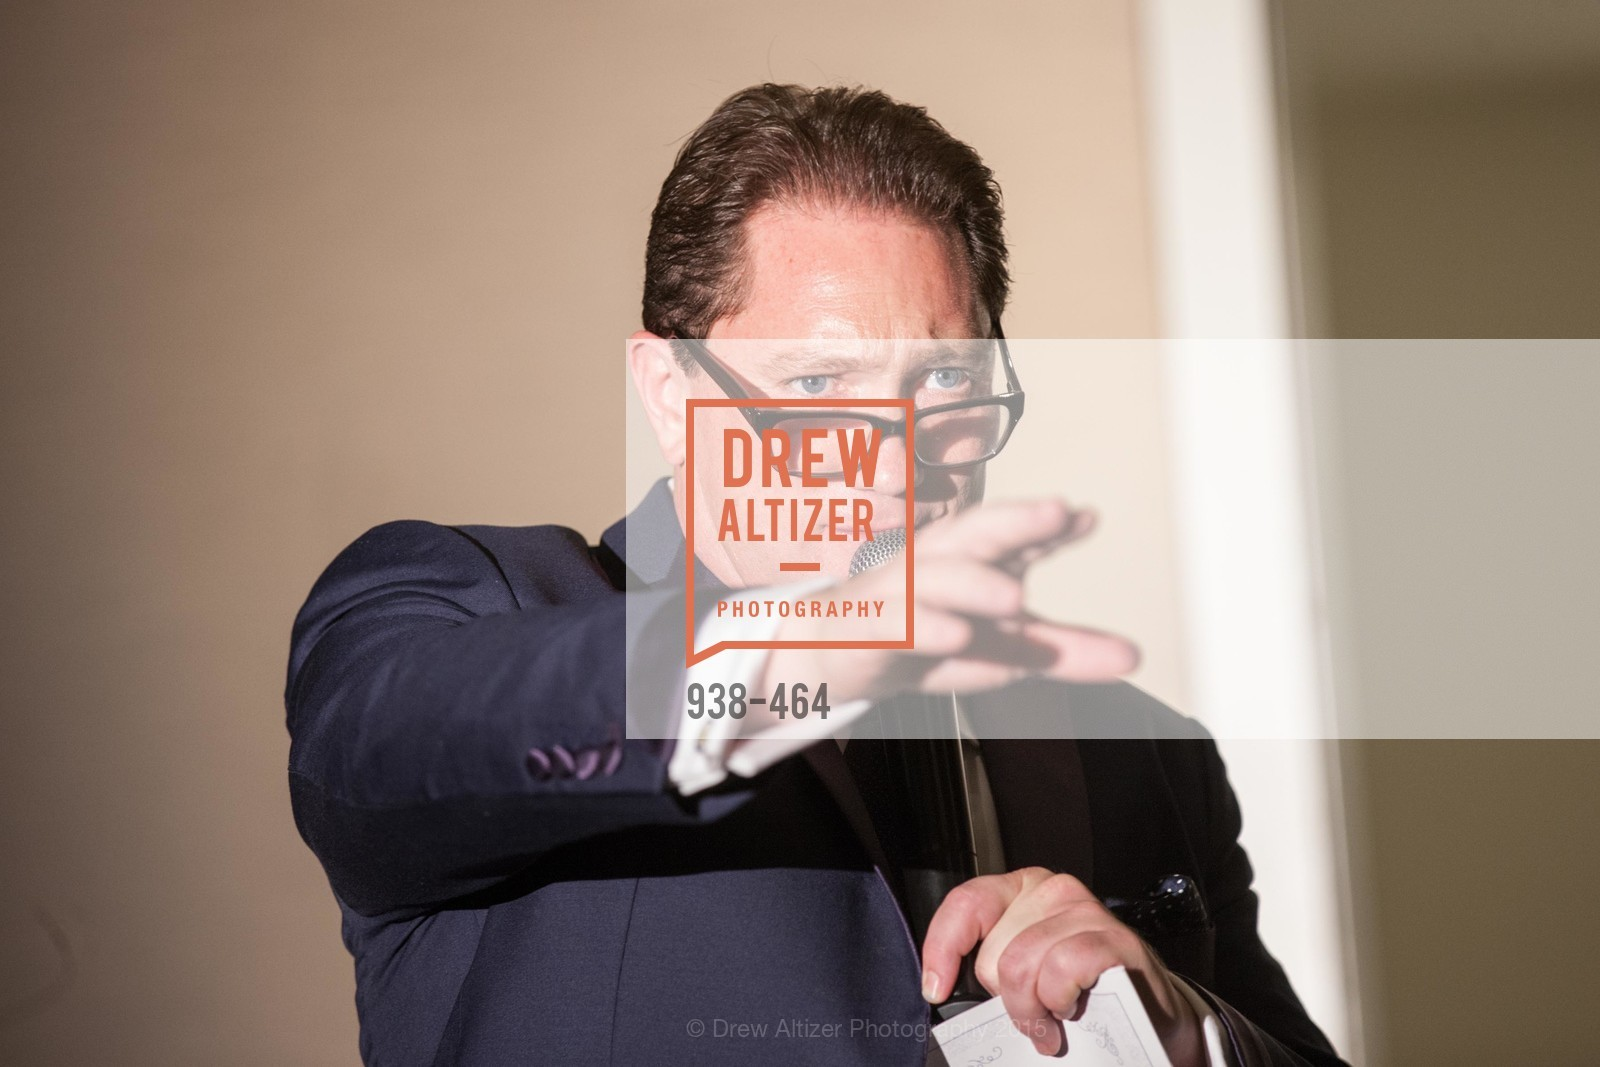 Liam Mayclem, Operation Smile Presents THE SAN FRANCISCO 2015 SMILE GALA, InterContinental Hotel, November 7th, 2015,Drew Altizer, Drew Altizer Photography, full-service event agency, private events, San Francisco photographer, photographer California